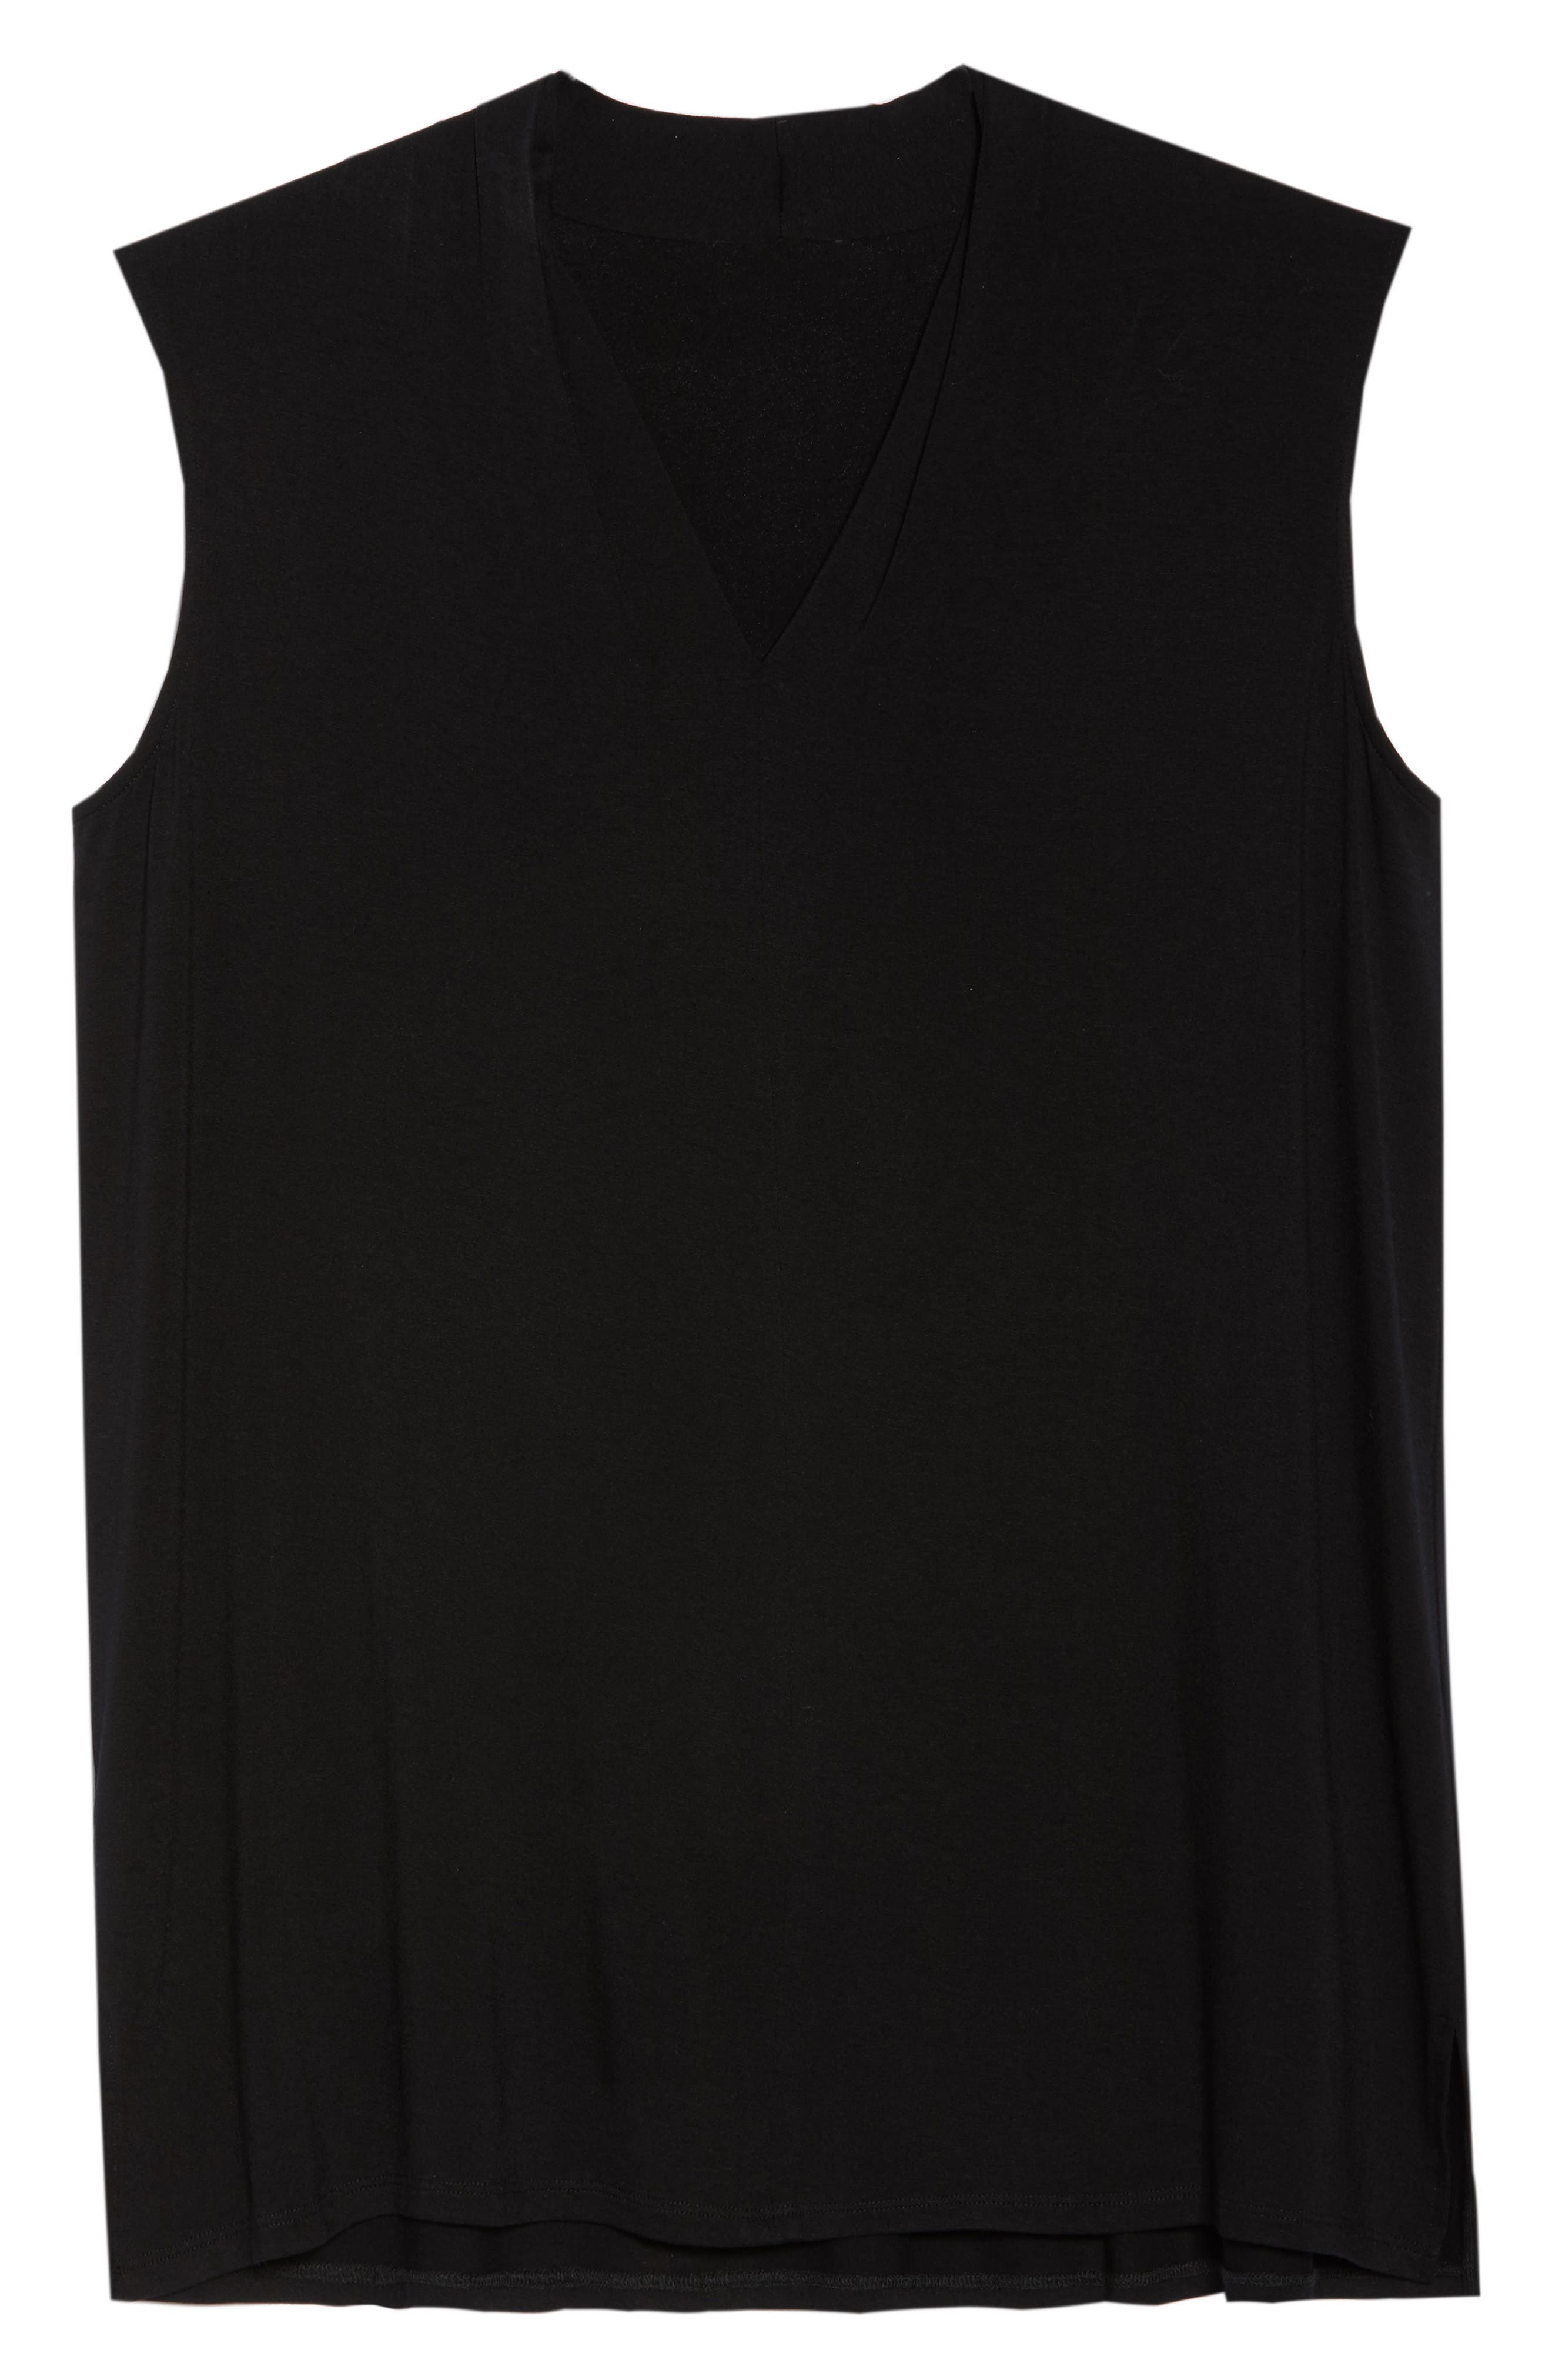 VINCE CAMUTO, Sleeveless V-Neck Knit Blouse, Alternate thumbnail 7, color, RICH BLACK